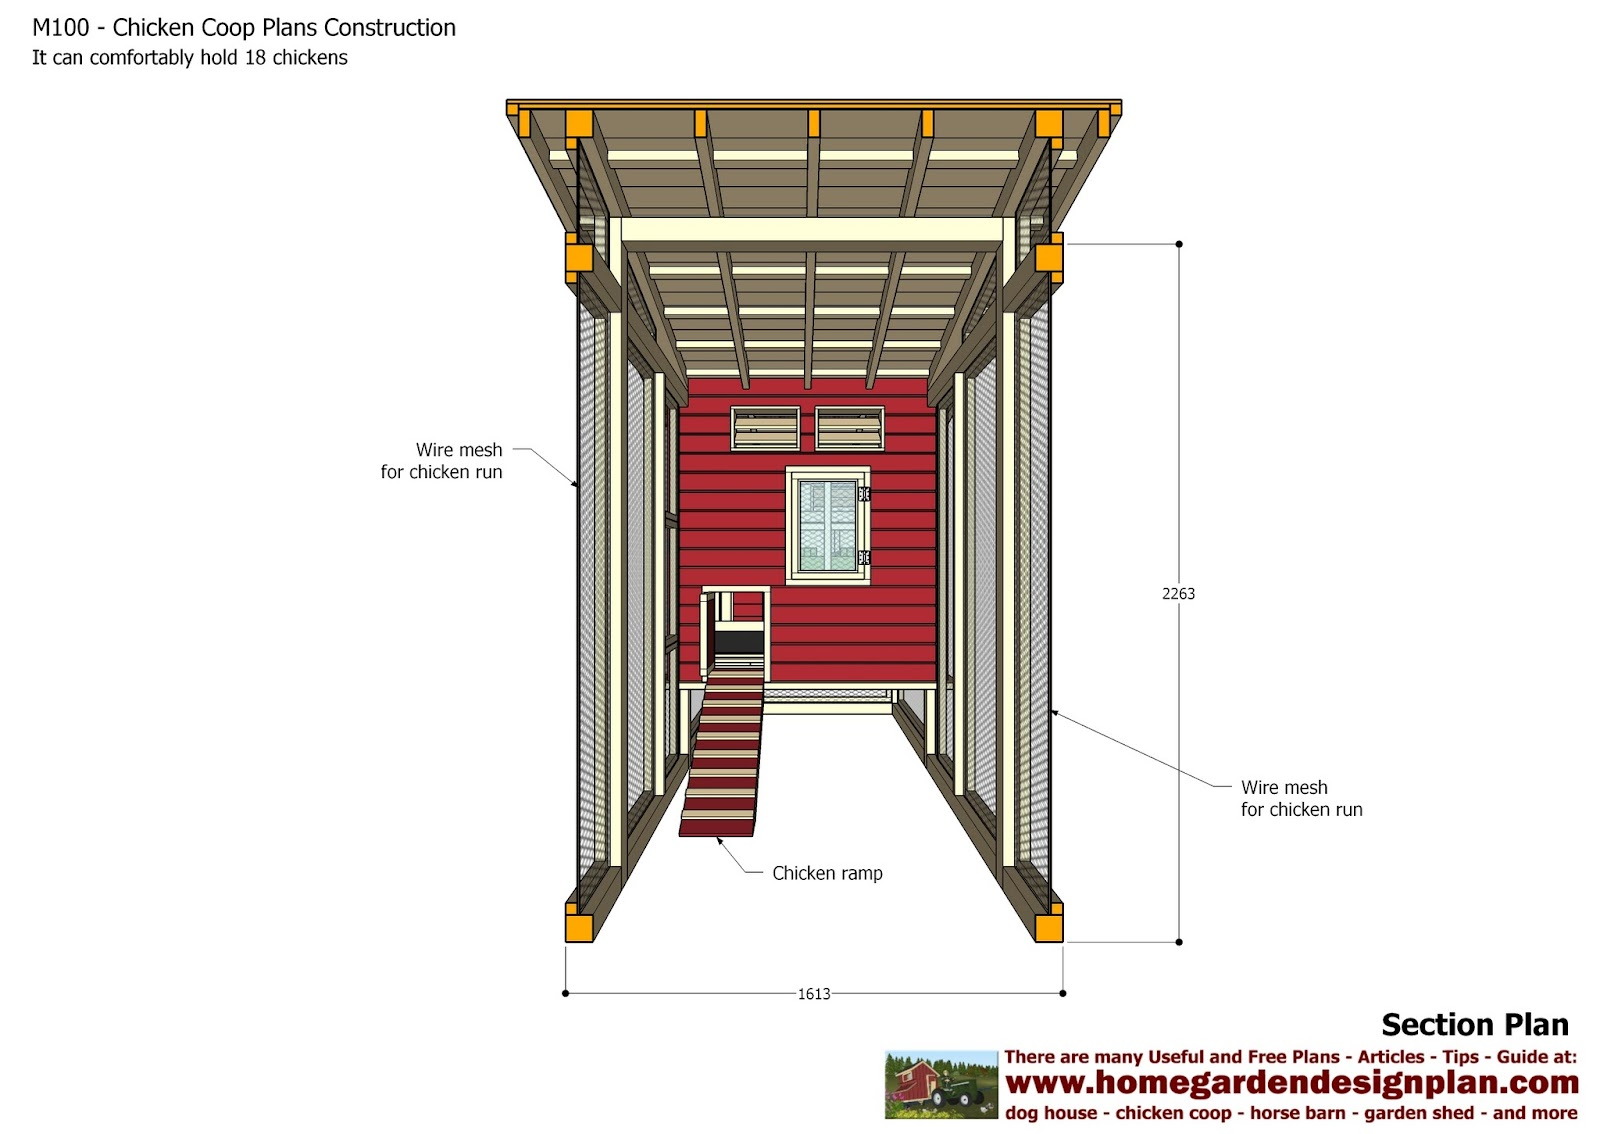 M100 - Chicken Coop Plans Construction - Chicken Coop Design - How To